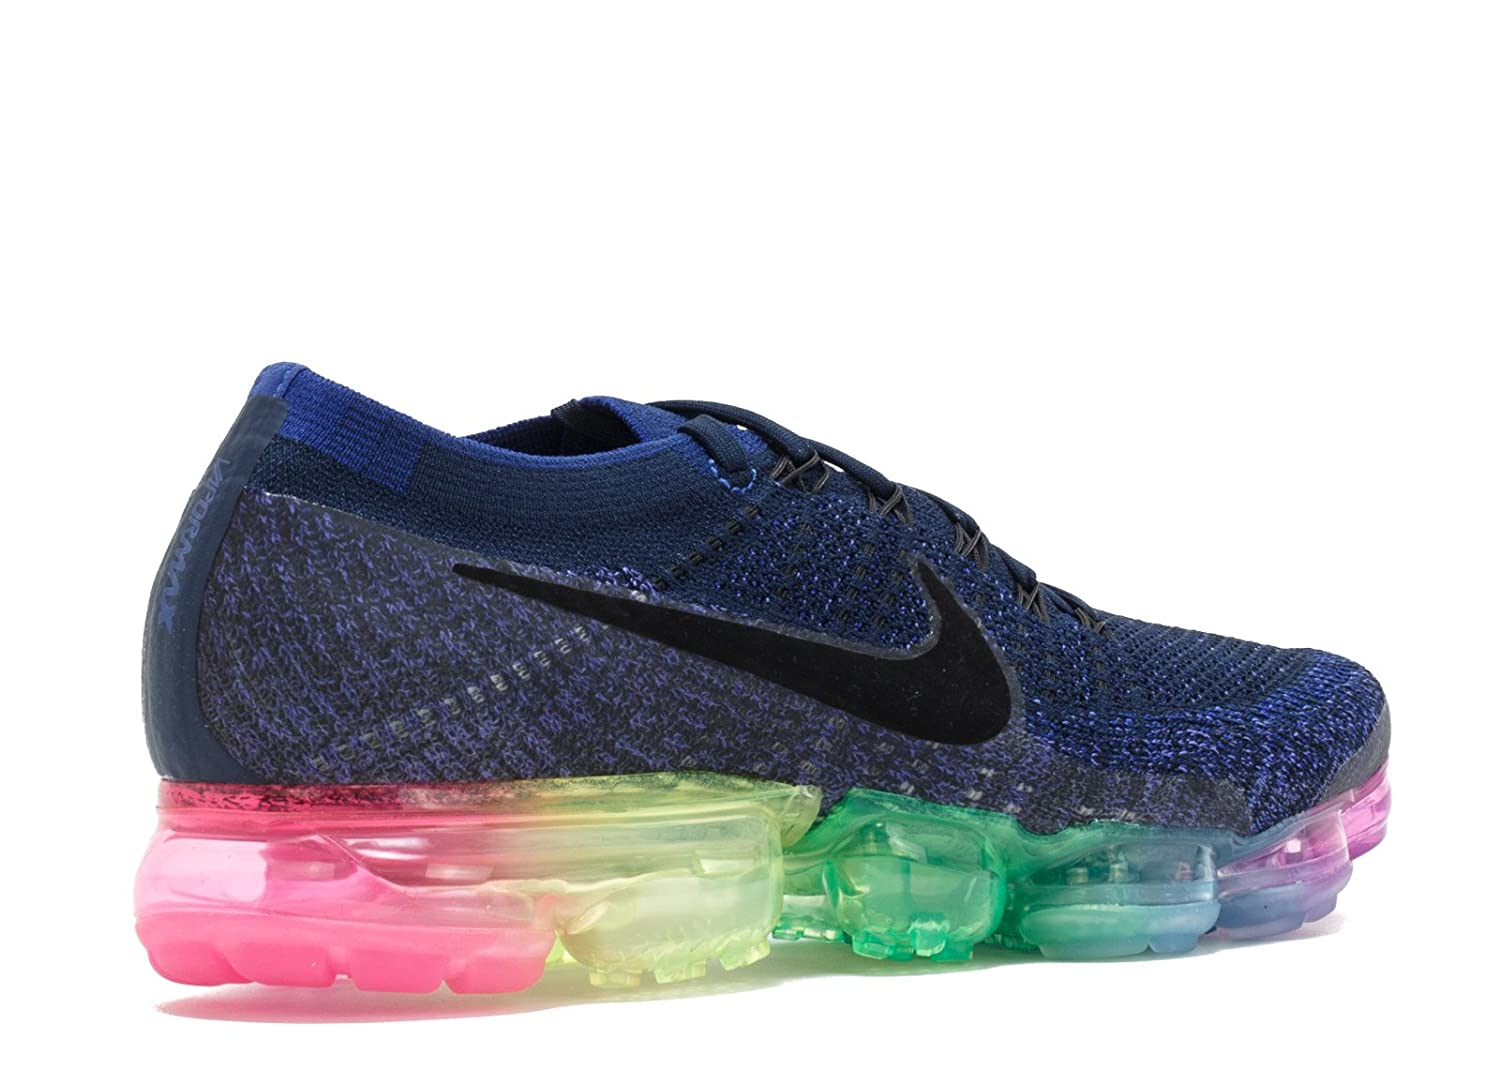 big sale 5145a 5193b Amazon.com  NIKE Air Vapormax Flyknit BETRUE Be True - 883275-400 - US  SIZE 14  Fashion Sneakers